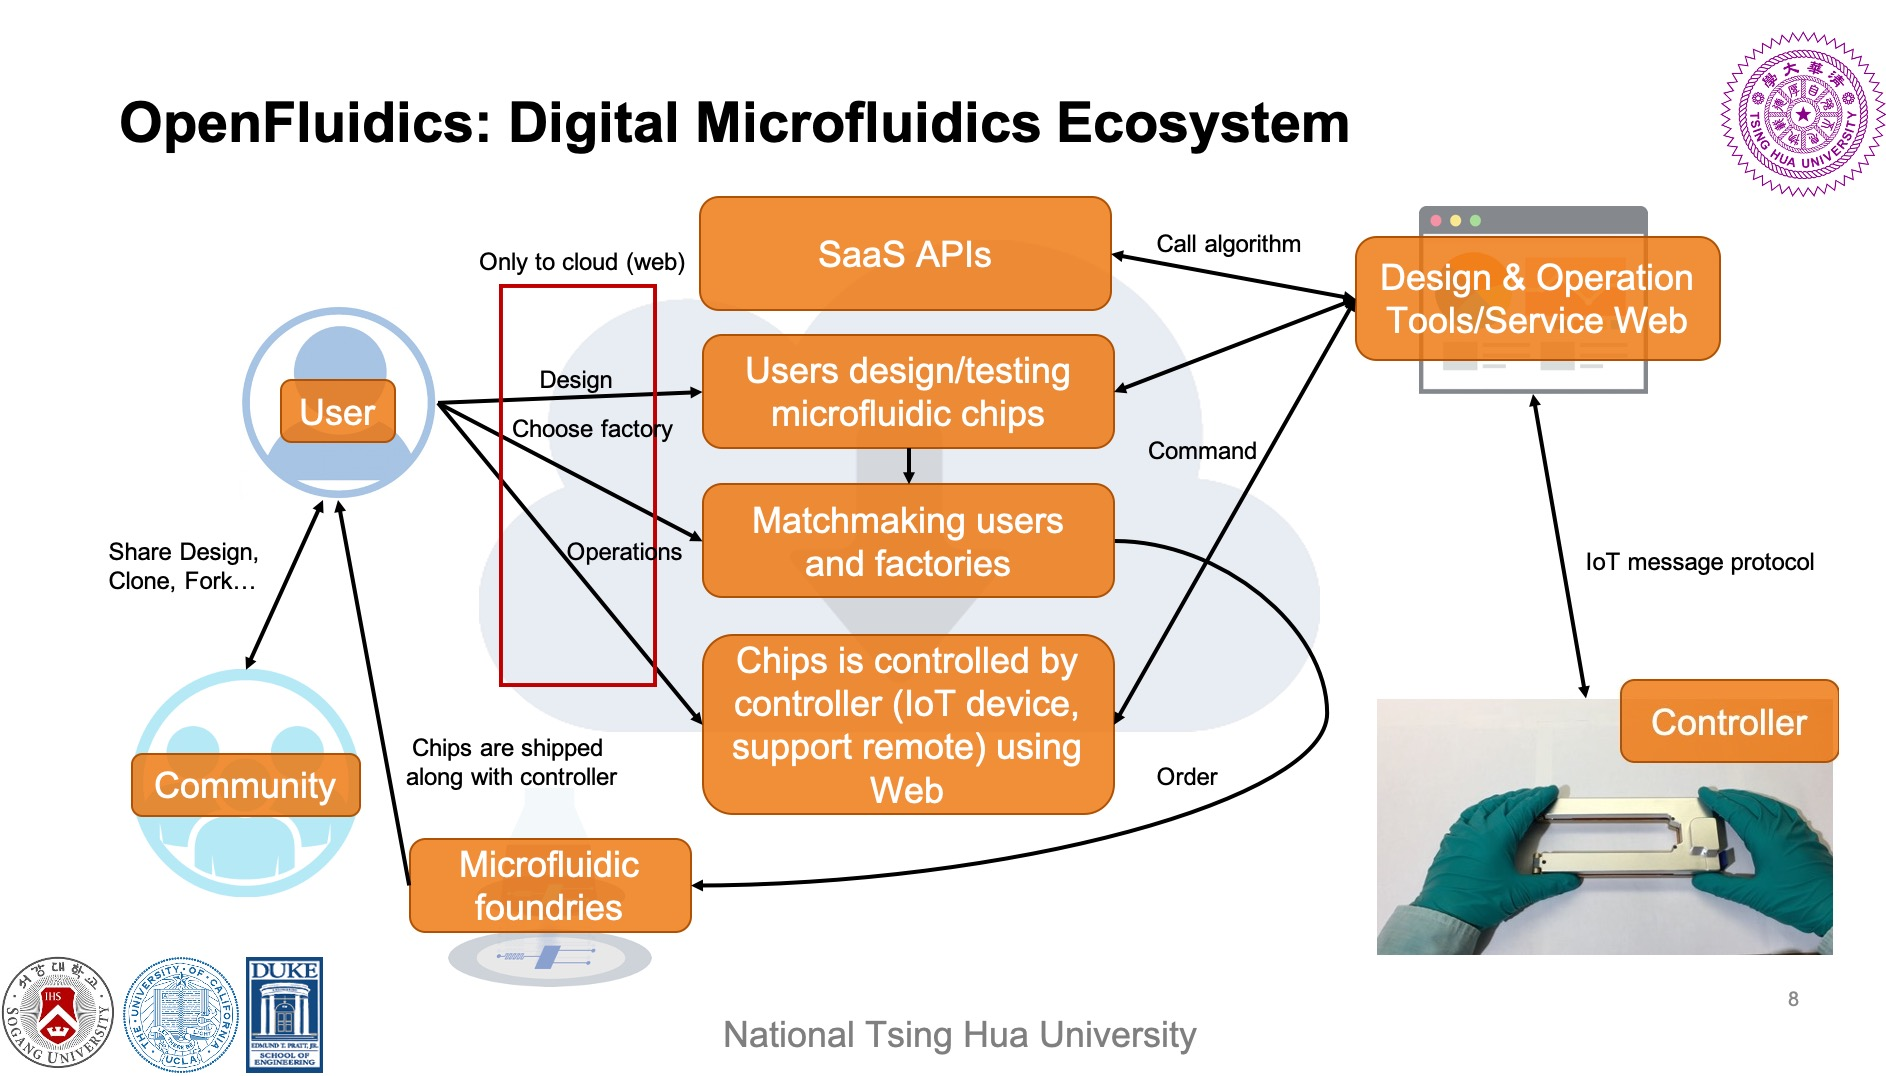 OpenFluidics: An Open-Source Microfluidic Design Ecosystem